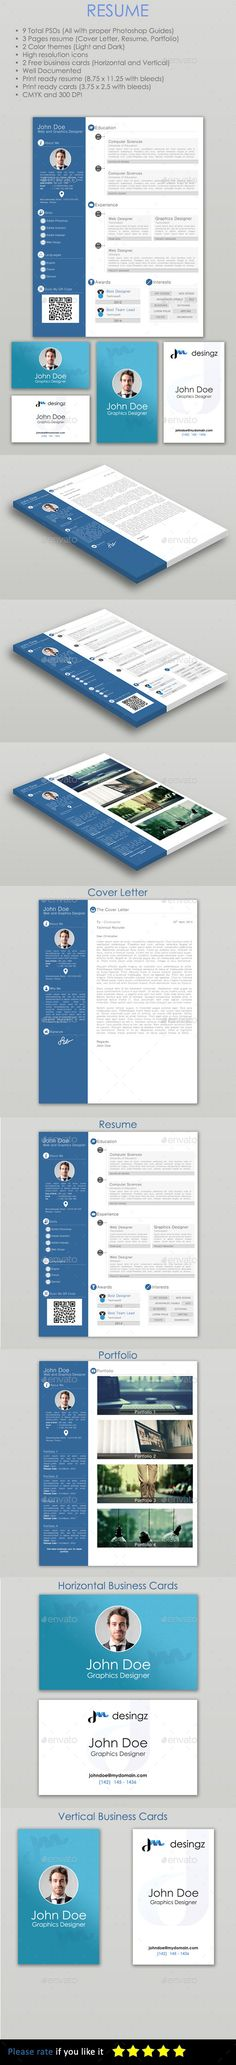 Resume PSD Template 34 best Resume